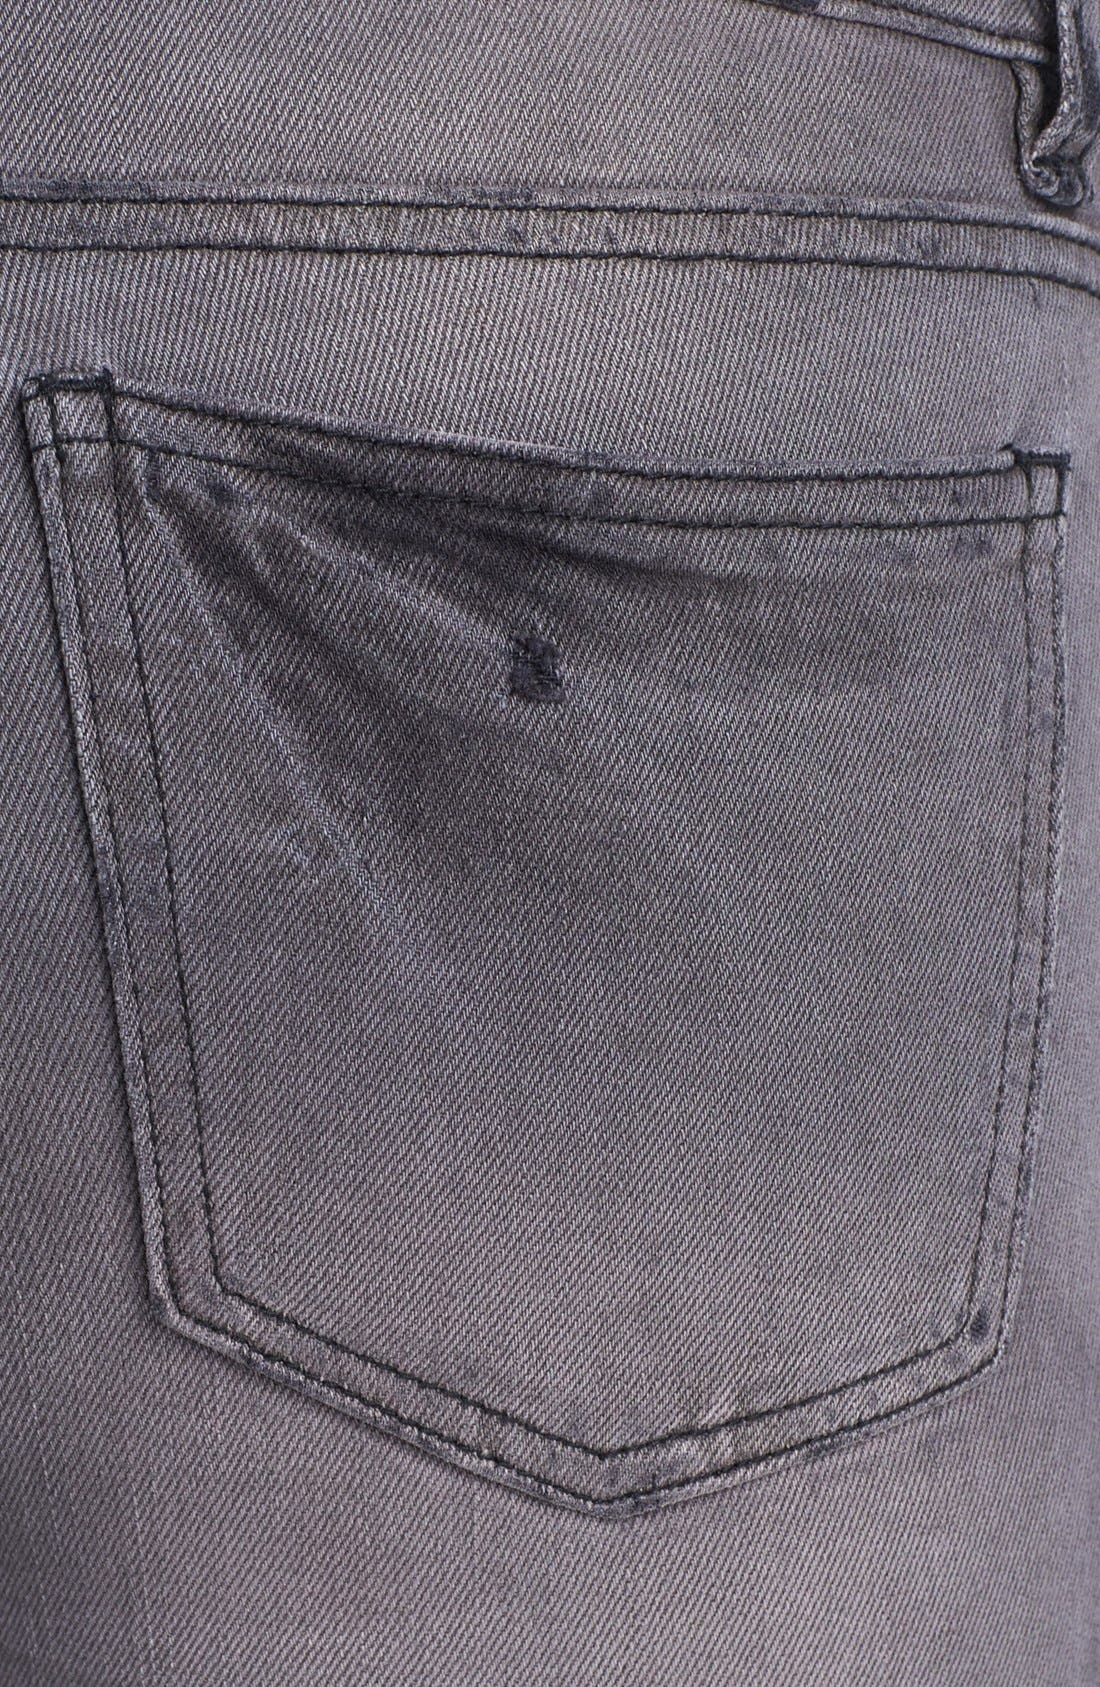 Alternate Image 3  - KUT from the Kloth 'Mia' Stretch Skinny Jeans (Simulating)